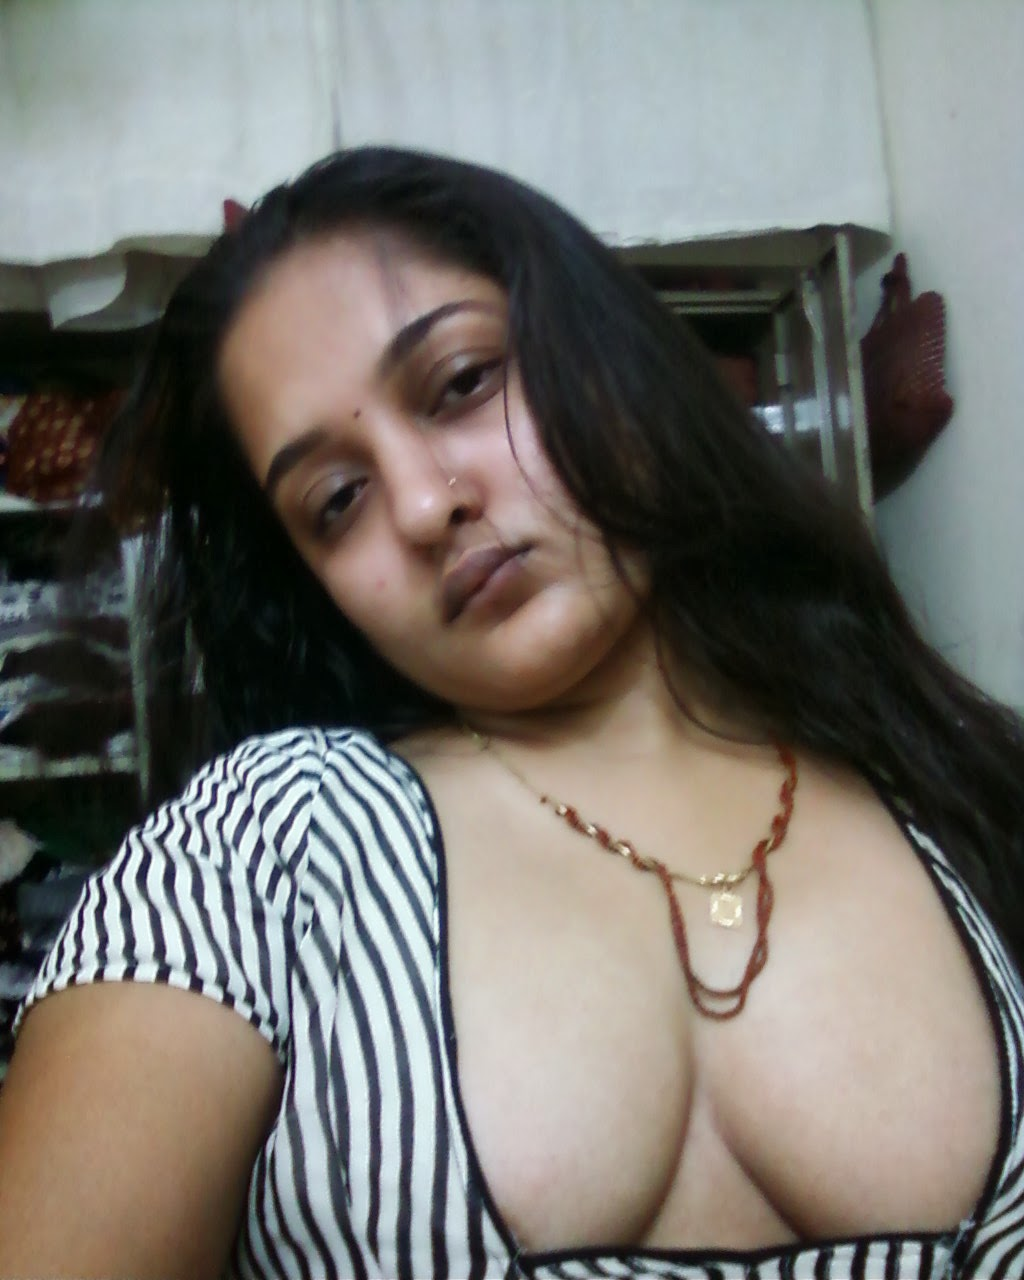 Remarkable, this big indian mature aunt boobs nude pics join. All